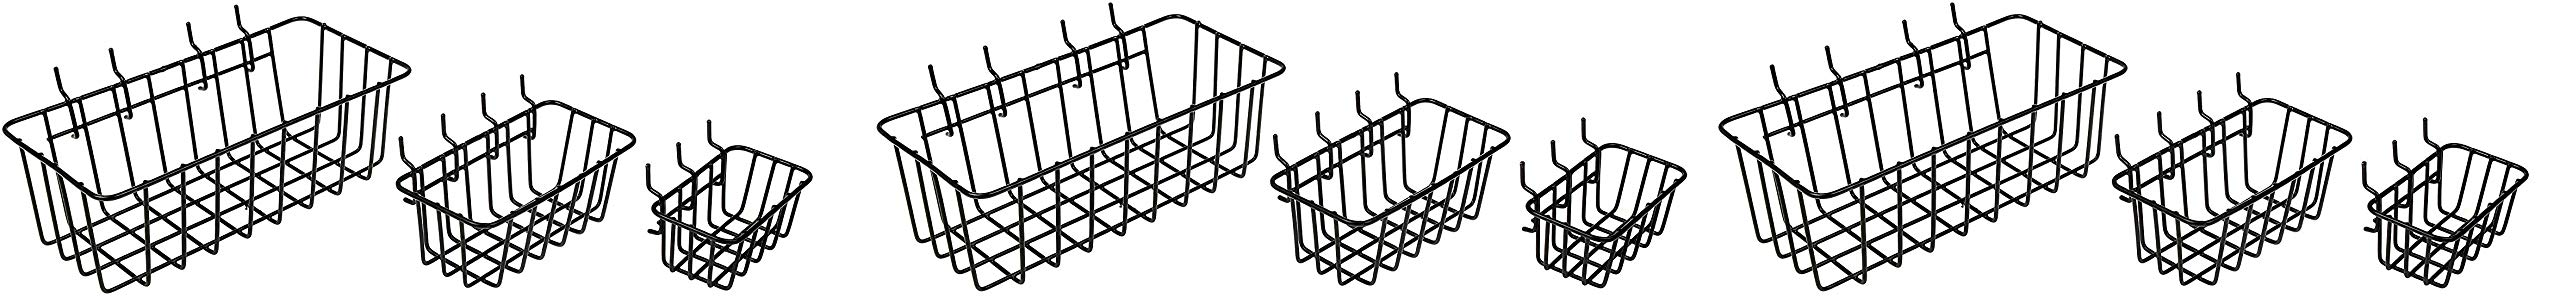 Dorman Hardware 4-9845 Peggable Wire Basket Set (3 X Pack of 3)